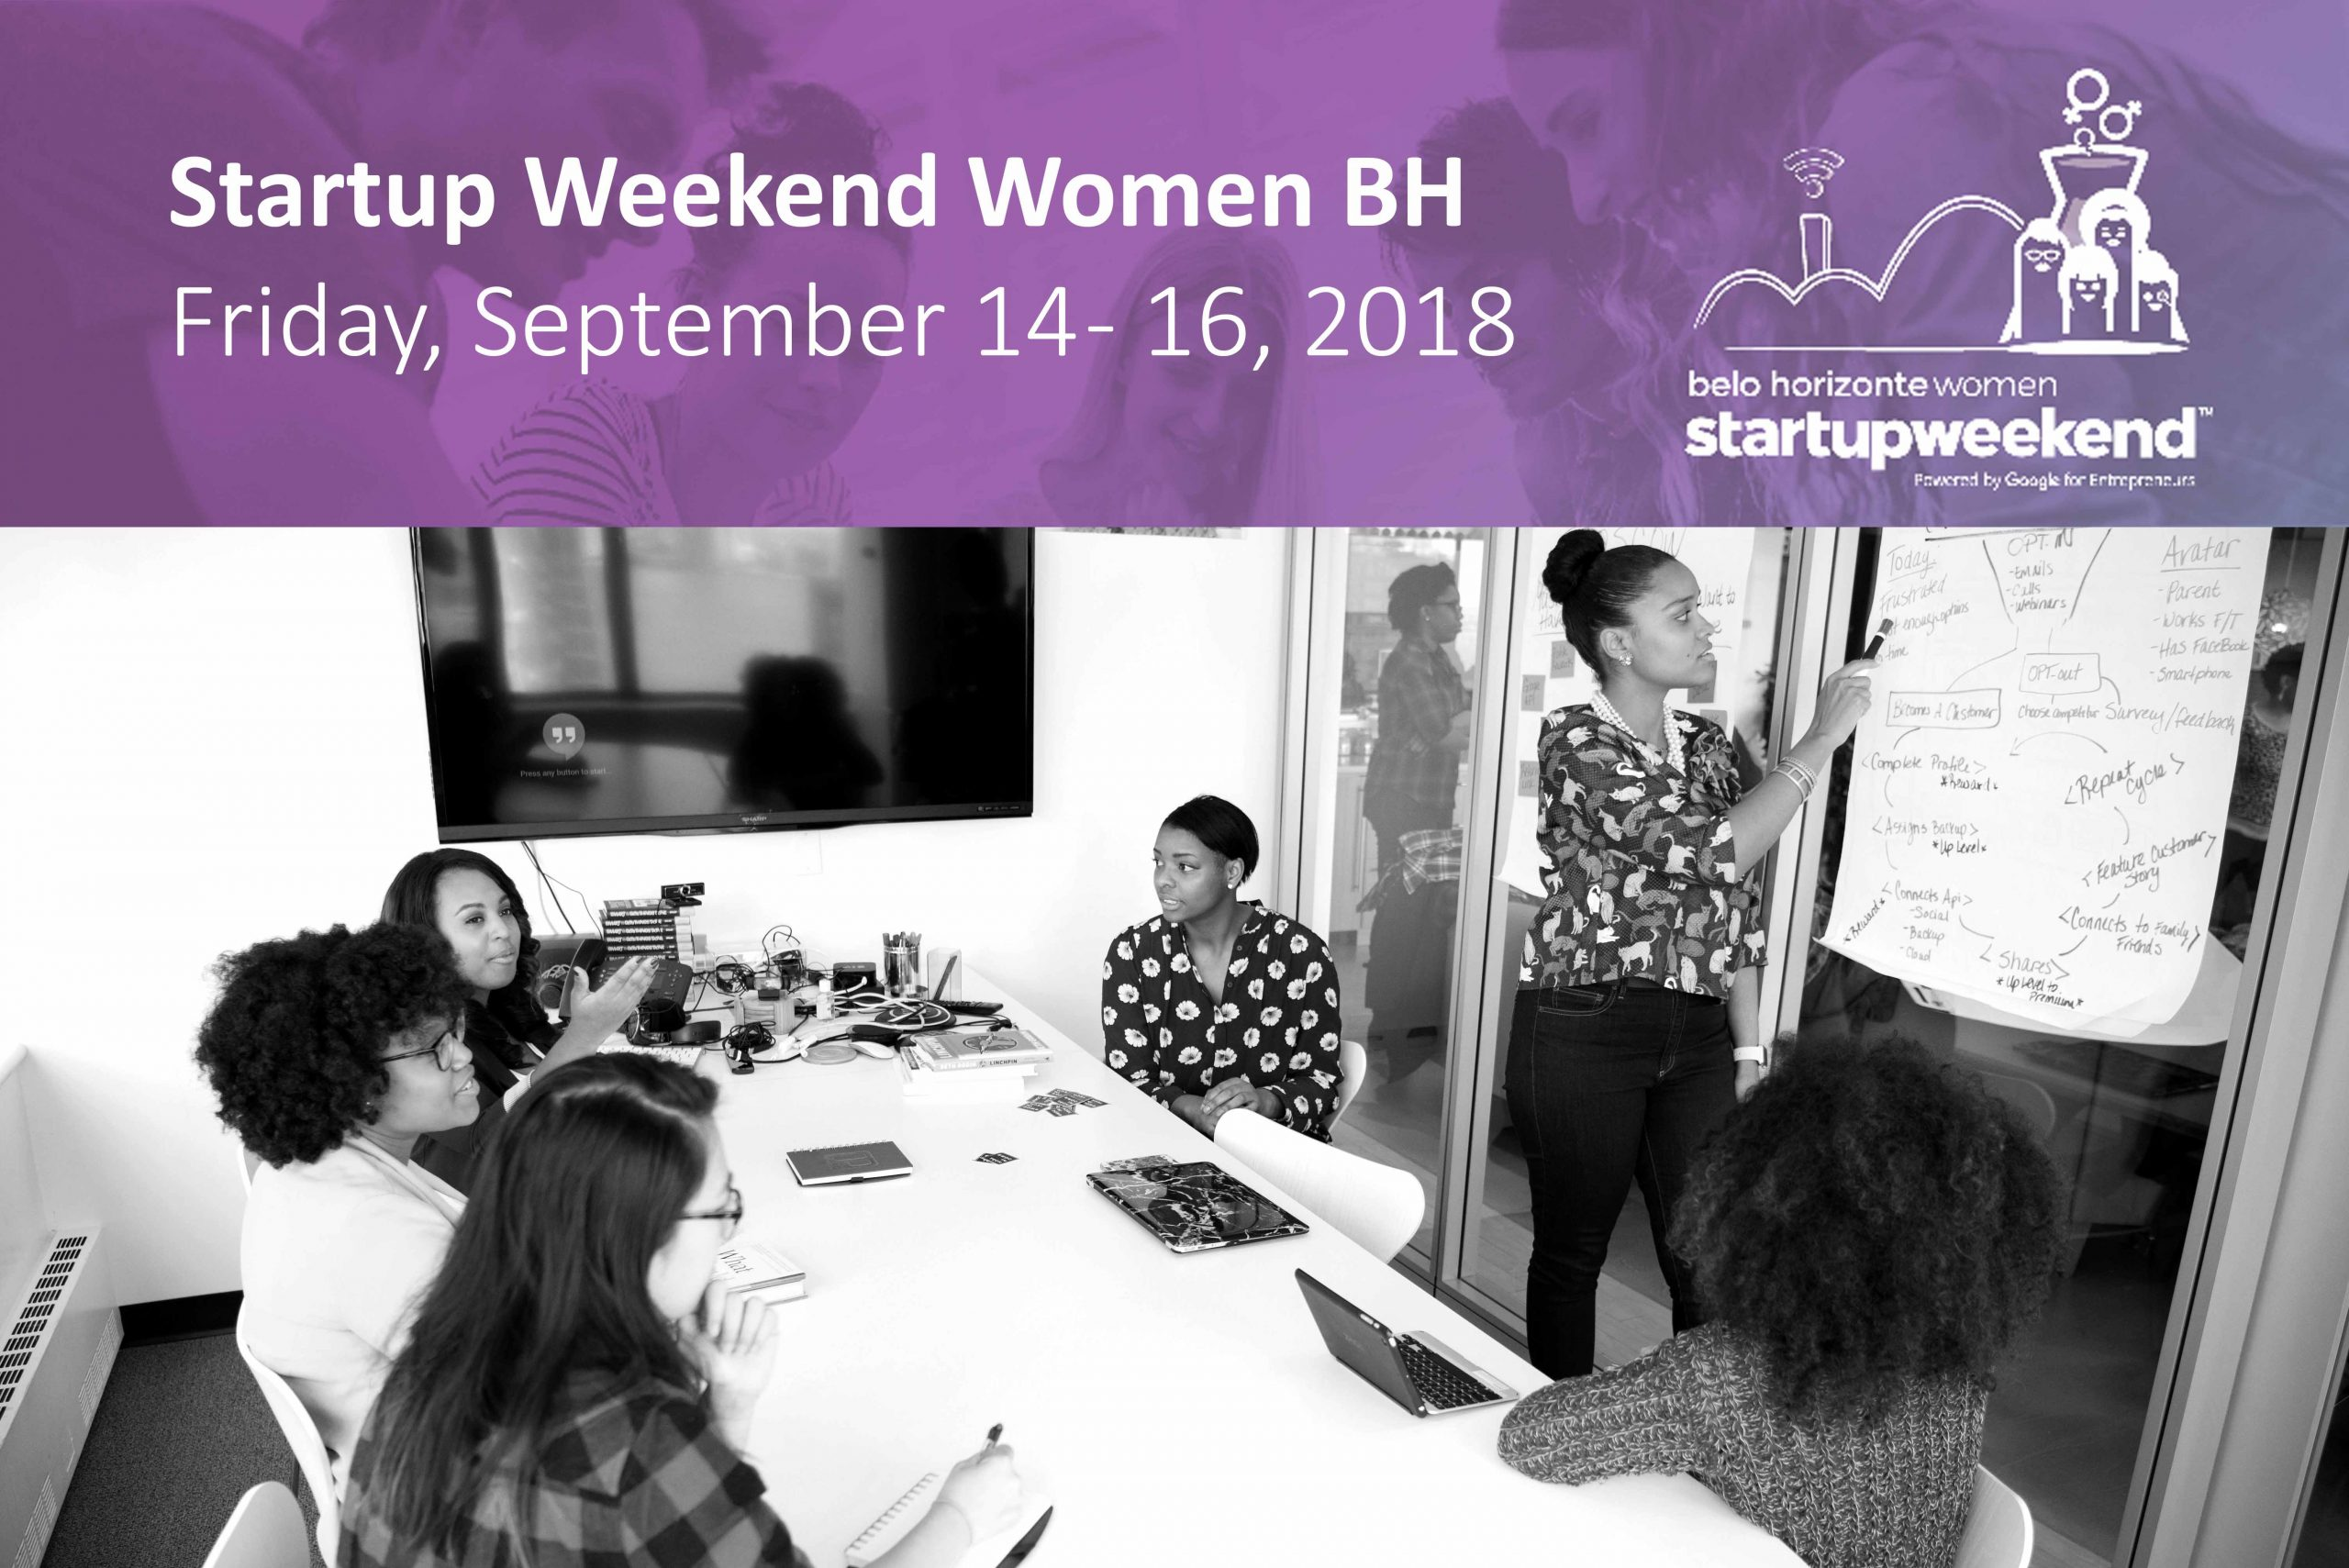 Startup Weekend Women BH: Unleash the entrepreneur within